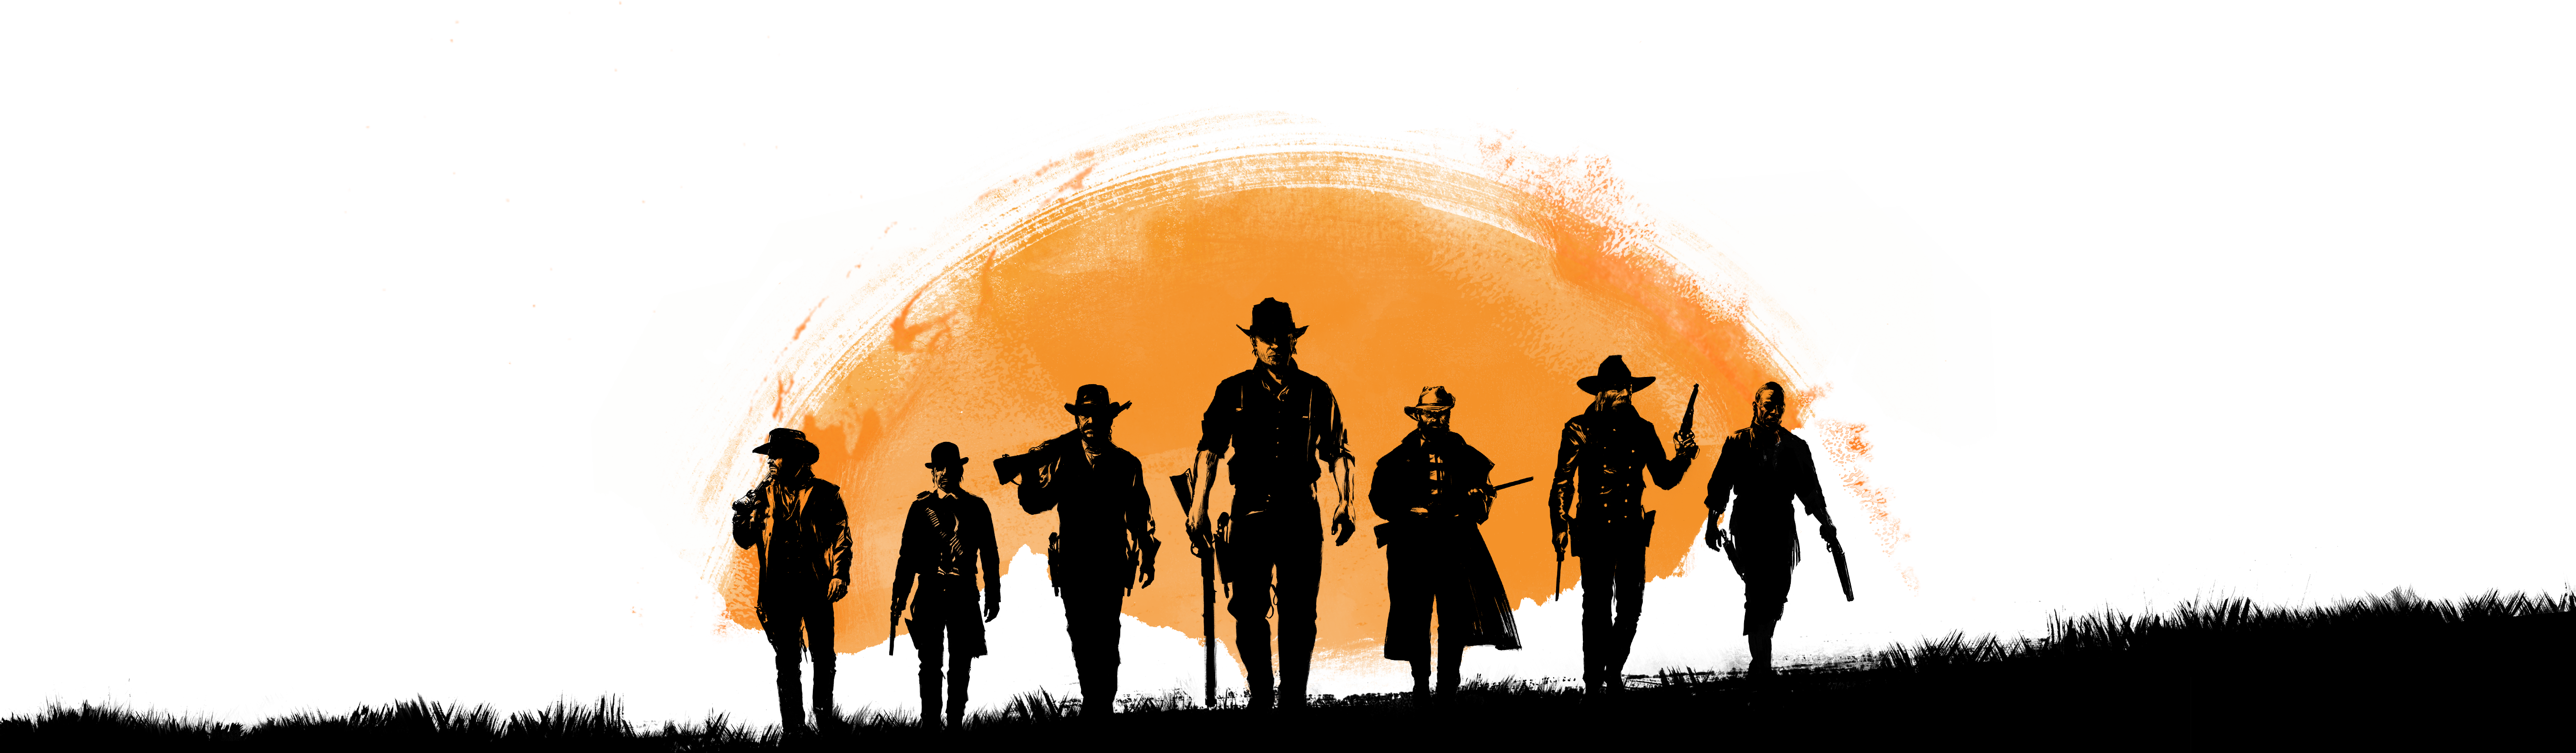 Silhouette Redemption Auto Dead Theft Grand Orange PNG Image